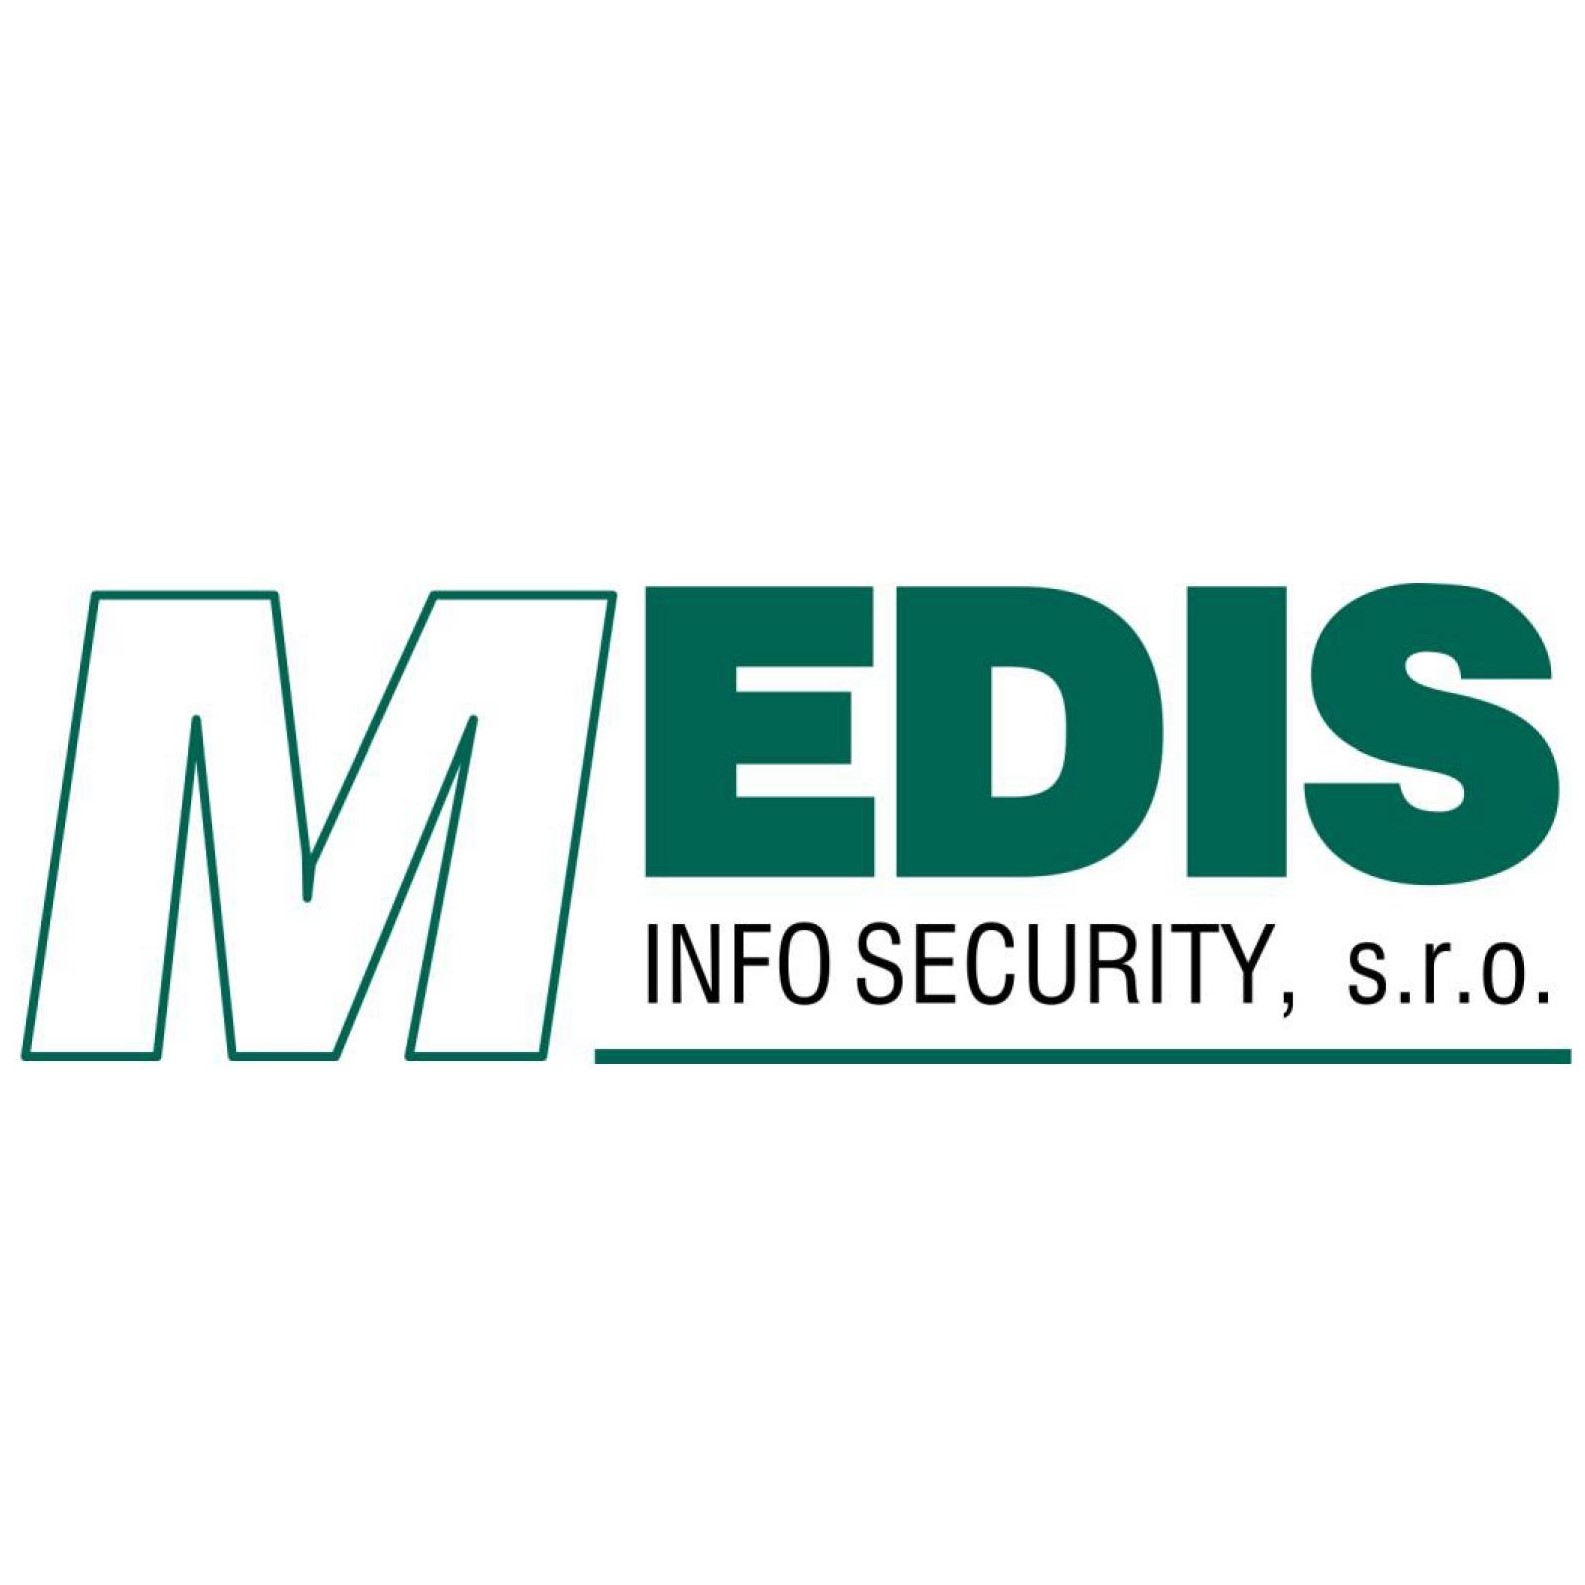 MEDIS INFO SECURITY